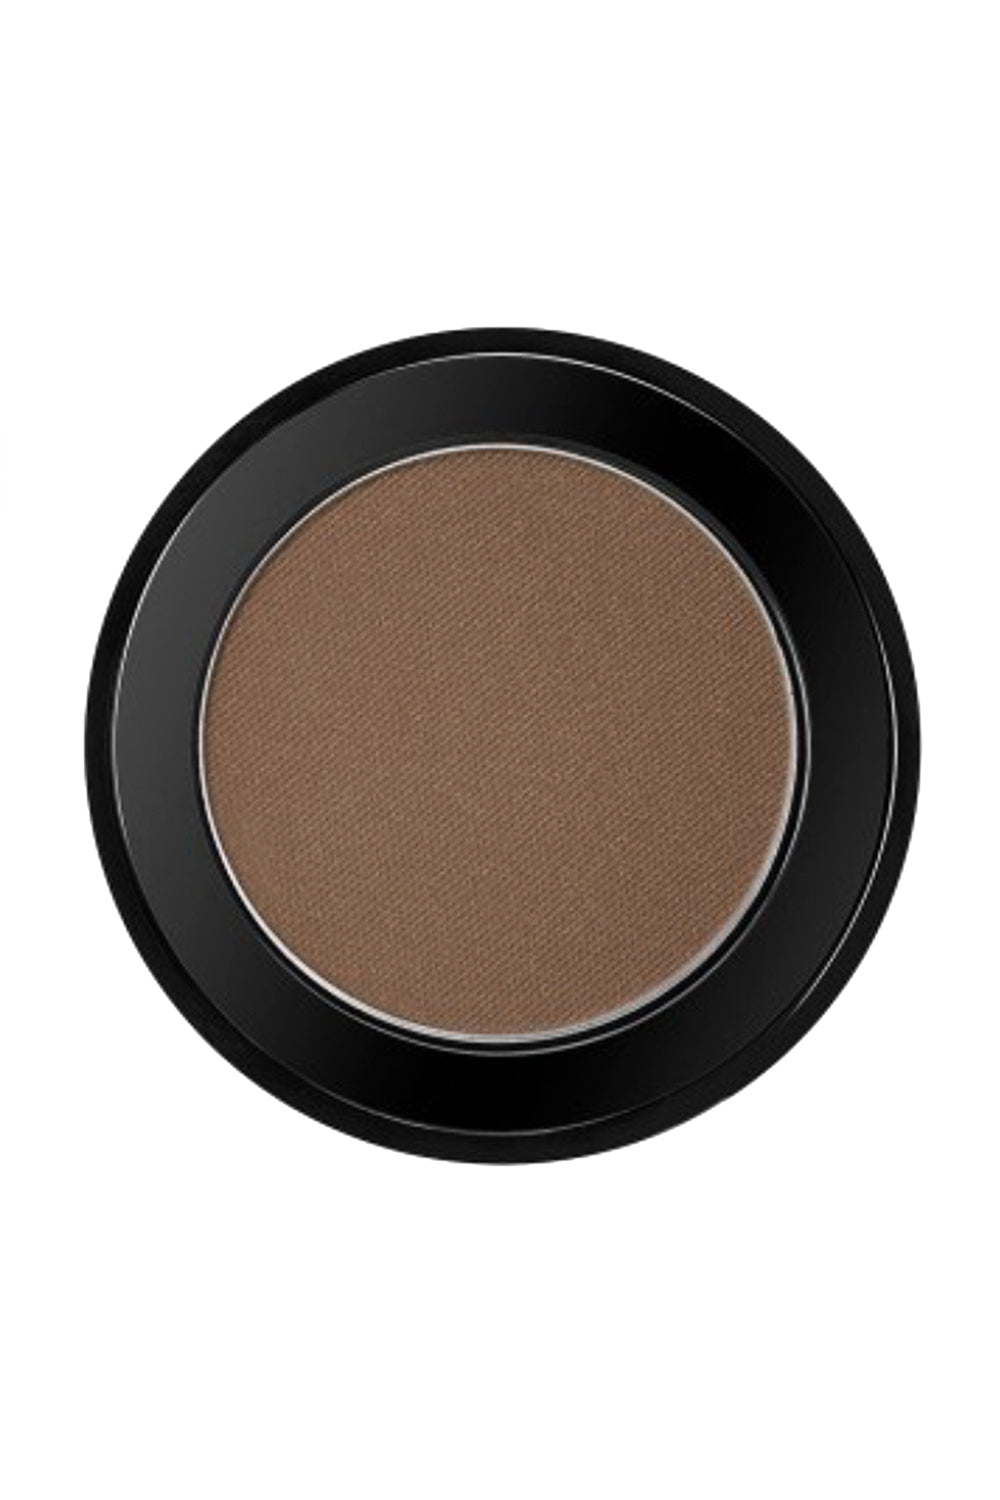 Type 1 Eyeshadow - Oh Fudge!